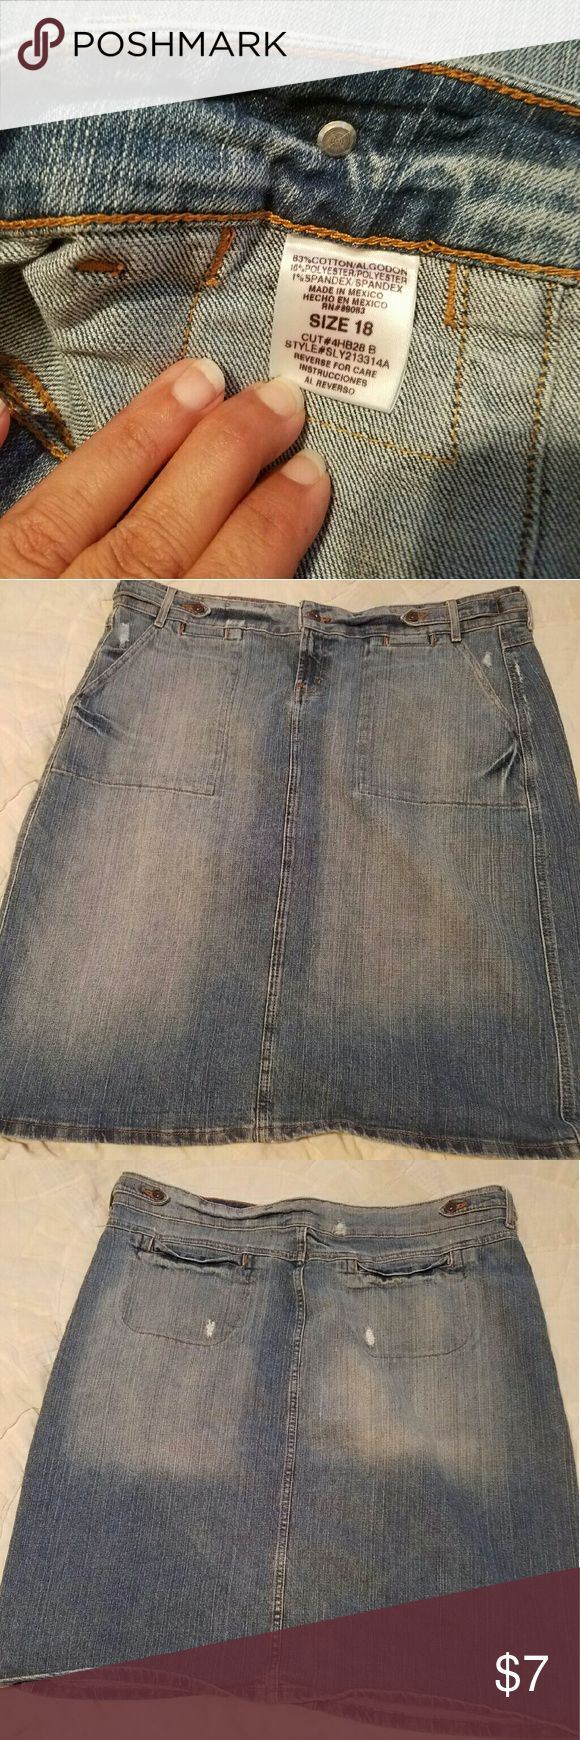 Womens Plus LEI distressed jean skirt- 18 Super cute and easy to wear womens plus size jean skirt by LEI. It has a distressed look to it. Falls just below the knees. There are 4 pockets. 2 back pockets and 2 side slit bigger pockets in the front. lei Skirts Pencil